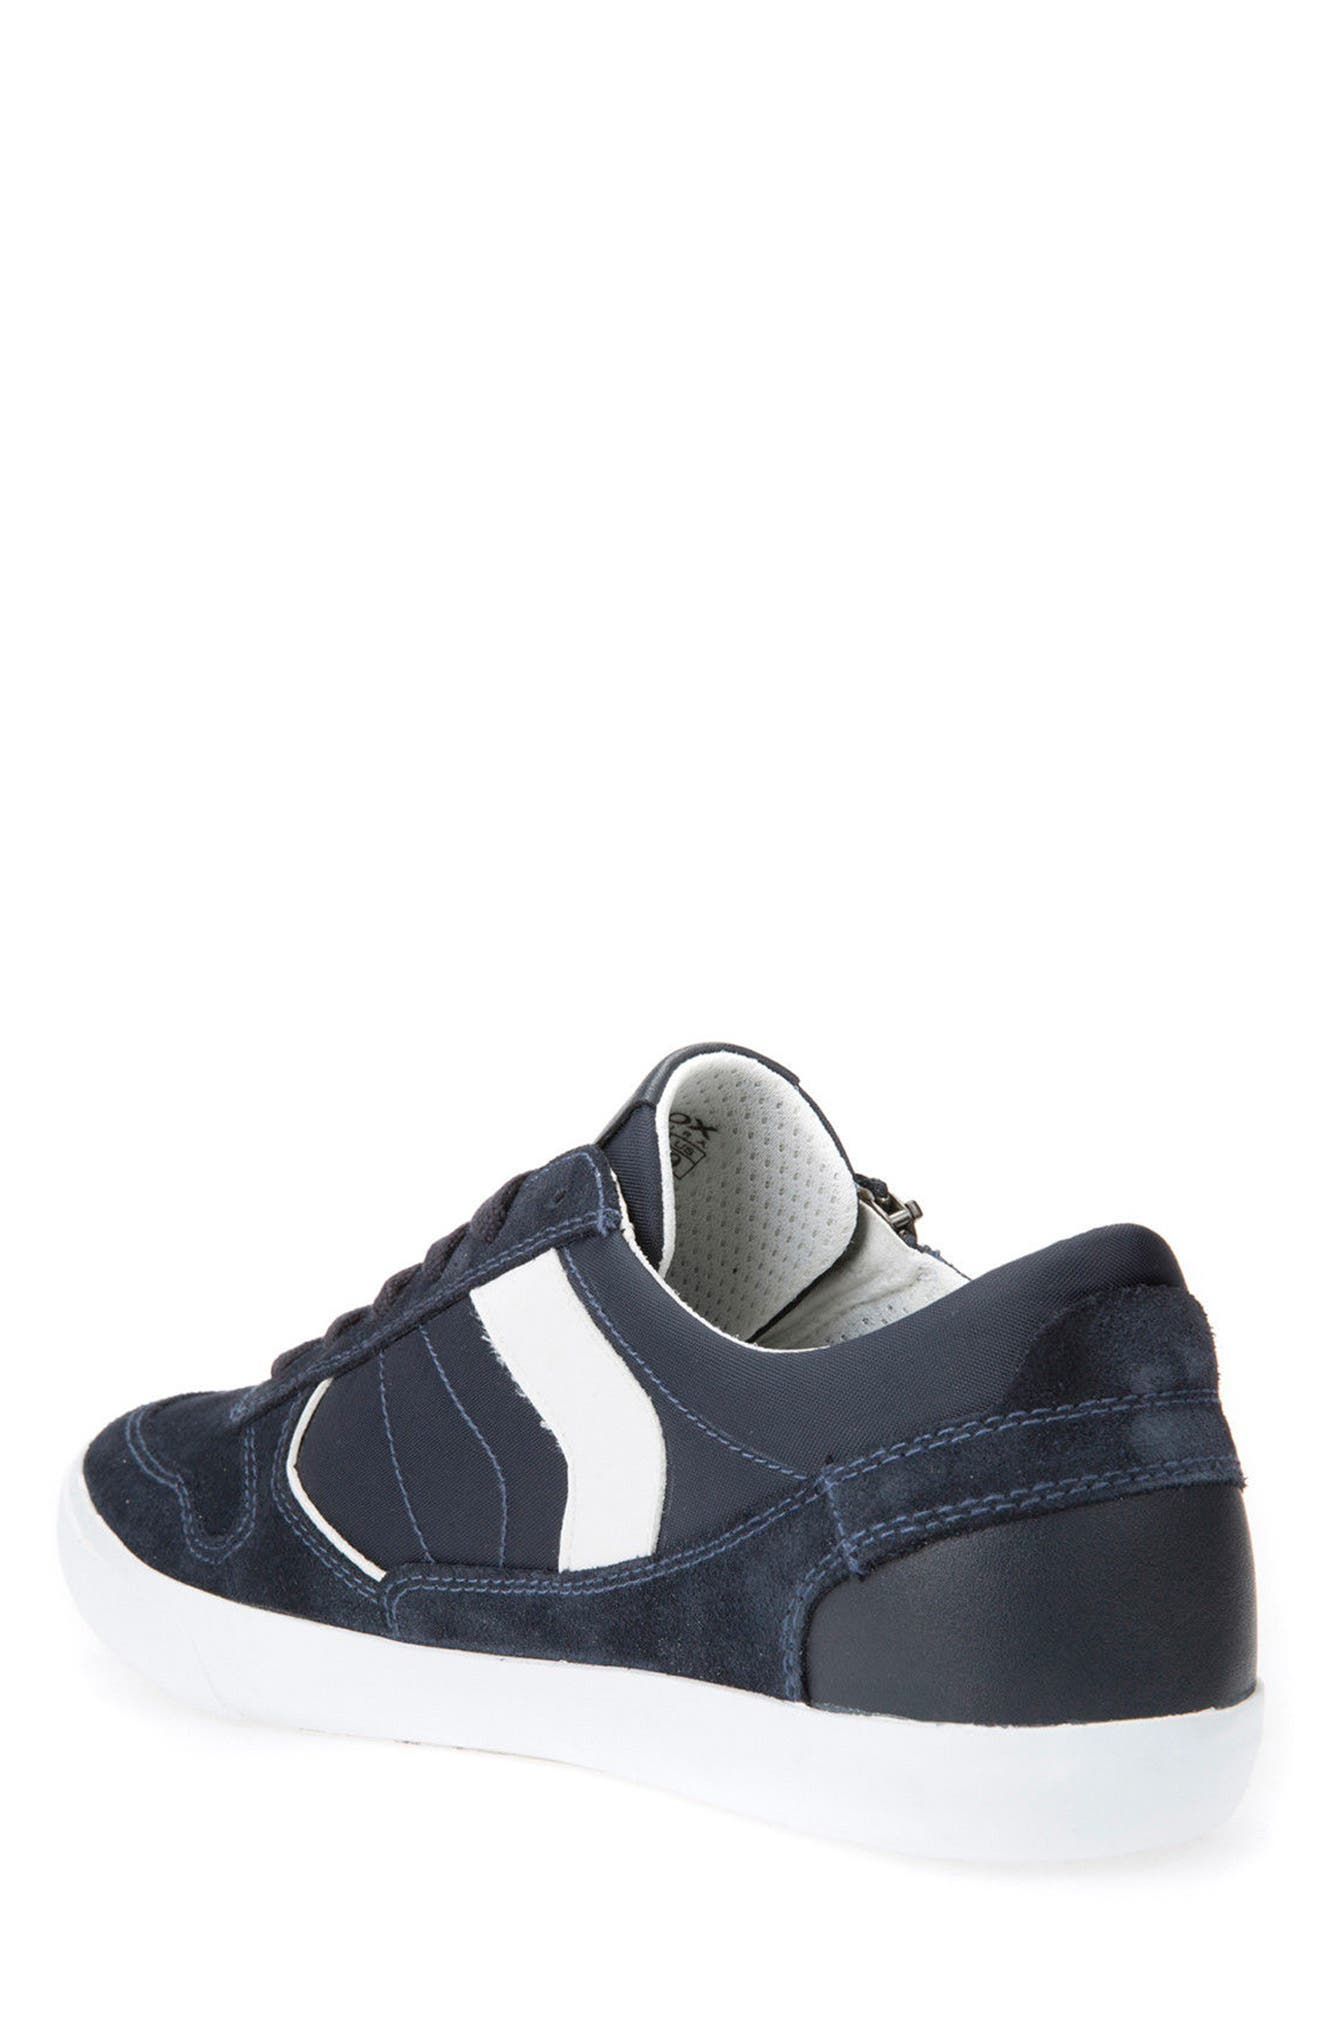 Box 33 Low Top Zip Sneaker,                             Alternate thumbnail 2, color,                             Navy